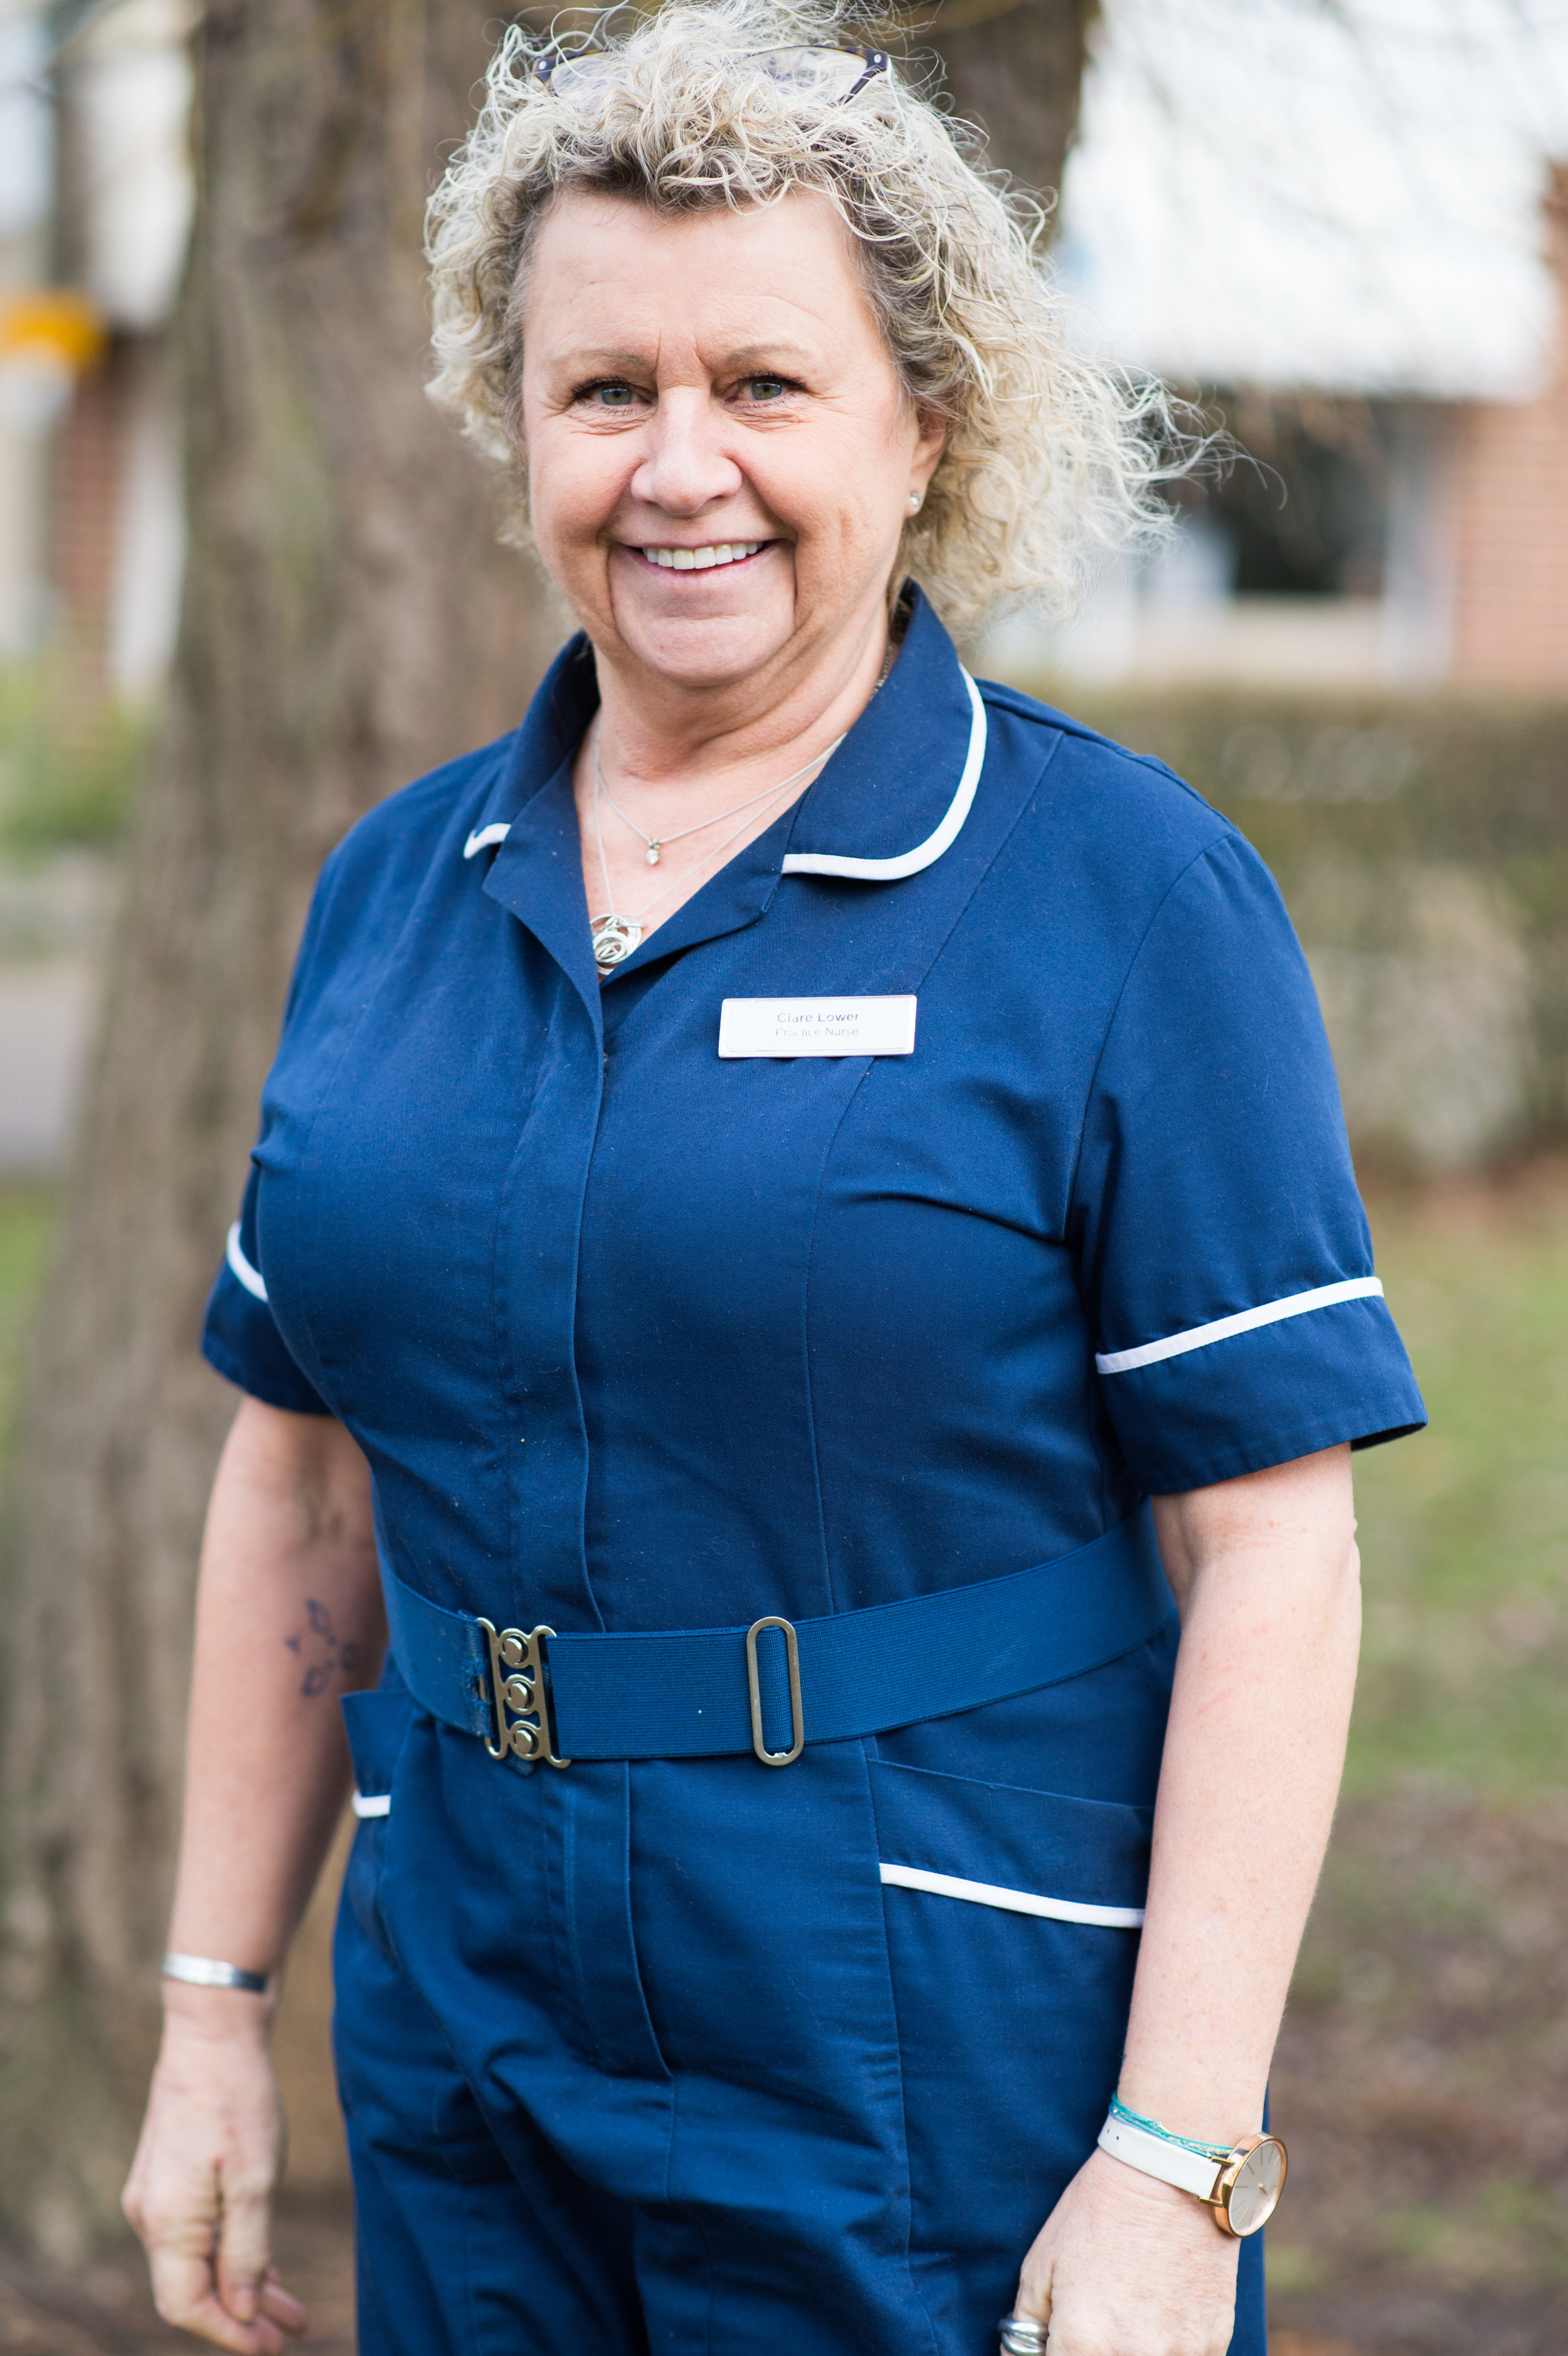 Clare Lower    Clare qualified in 1980 from Charing Cross Hospital, specialised in orthopaedics, intensive care, cardiac nursing and infertility. After completing her family Clare returned to nursing in 2002 and specialised in Practice nursing where she has been working ever since.  Clare has a particular interest in Travel Health, asthma and COPD, women's health and baby immunisations.